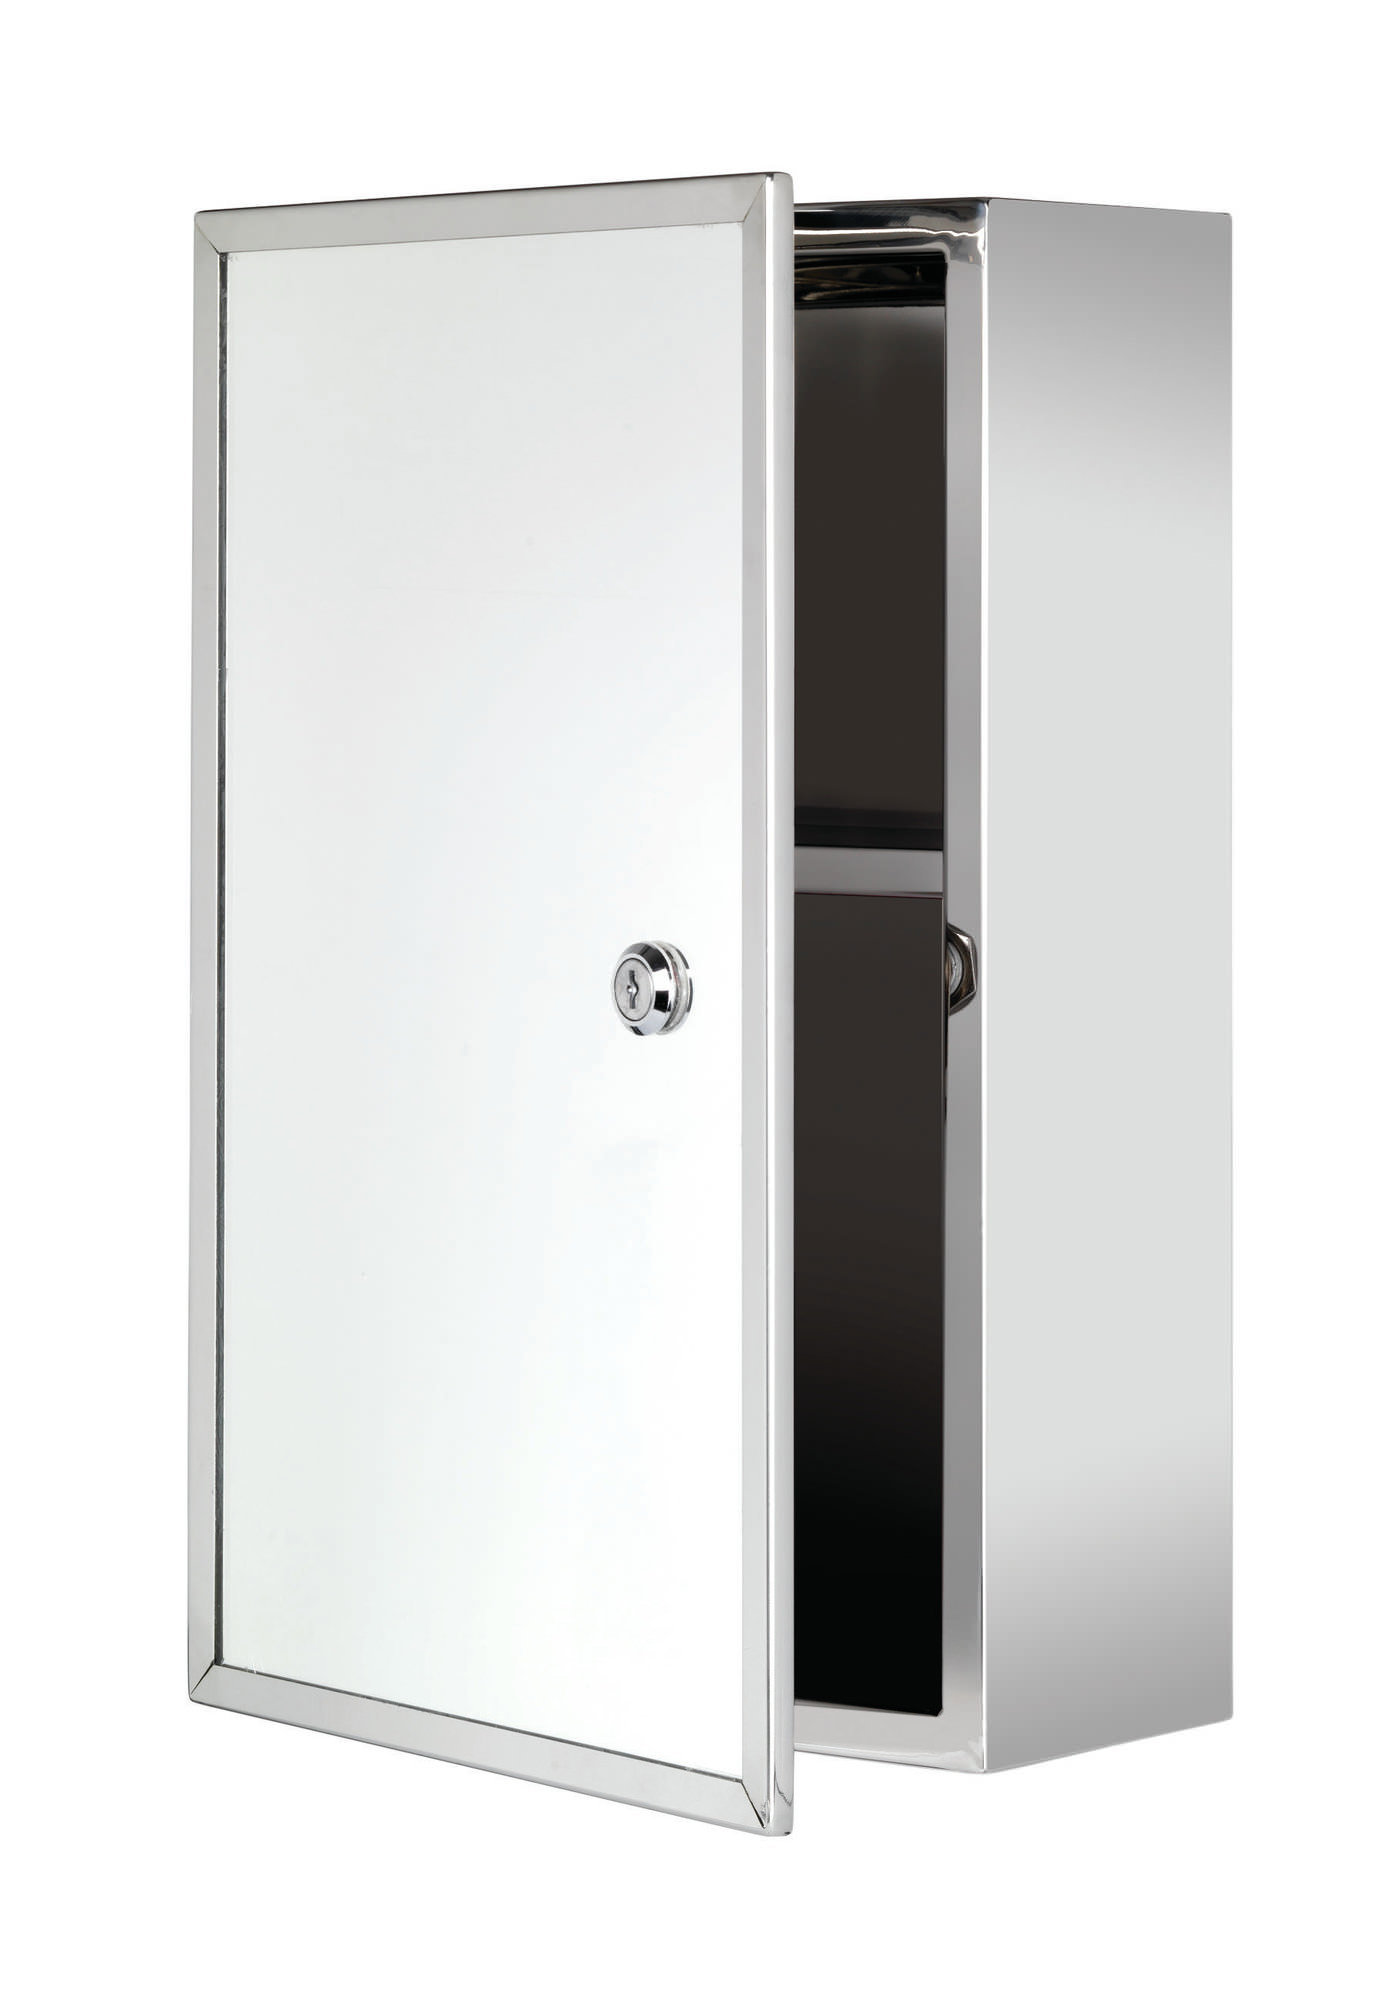 Croydex Trent Stainless Steel Lockable Medicine Cabinet - WC846005